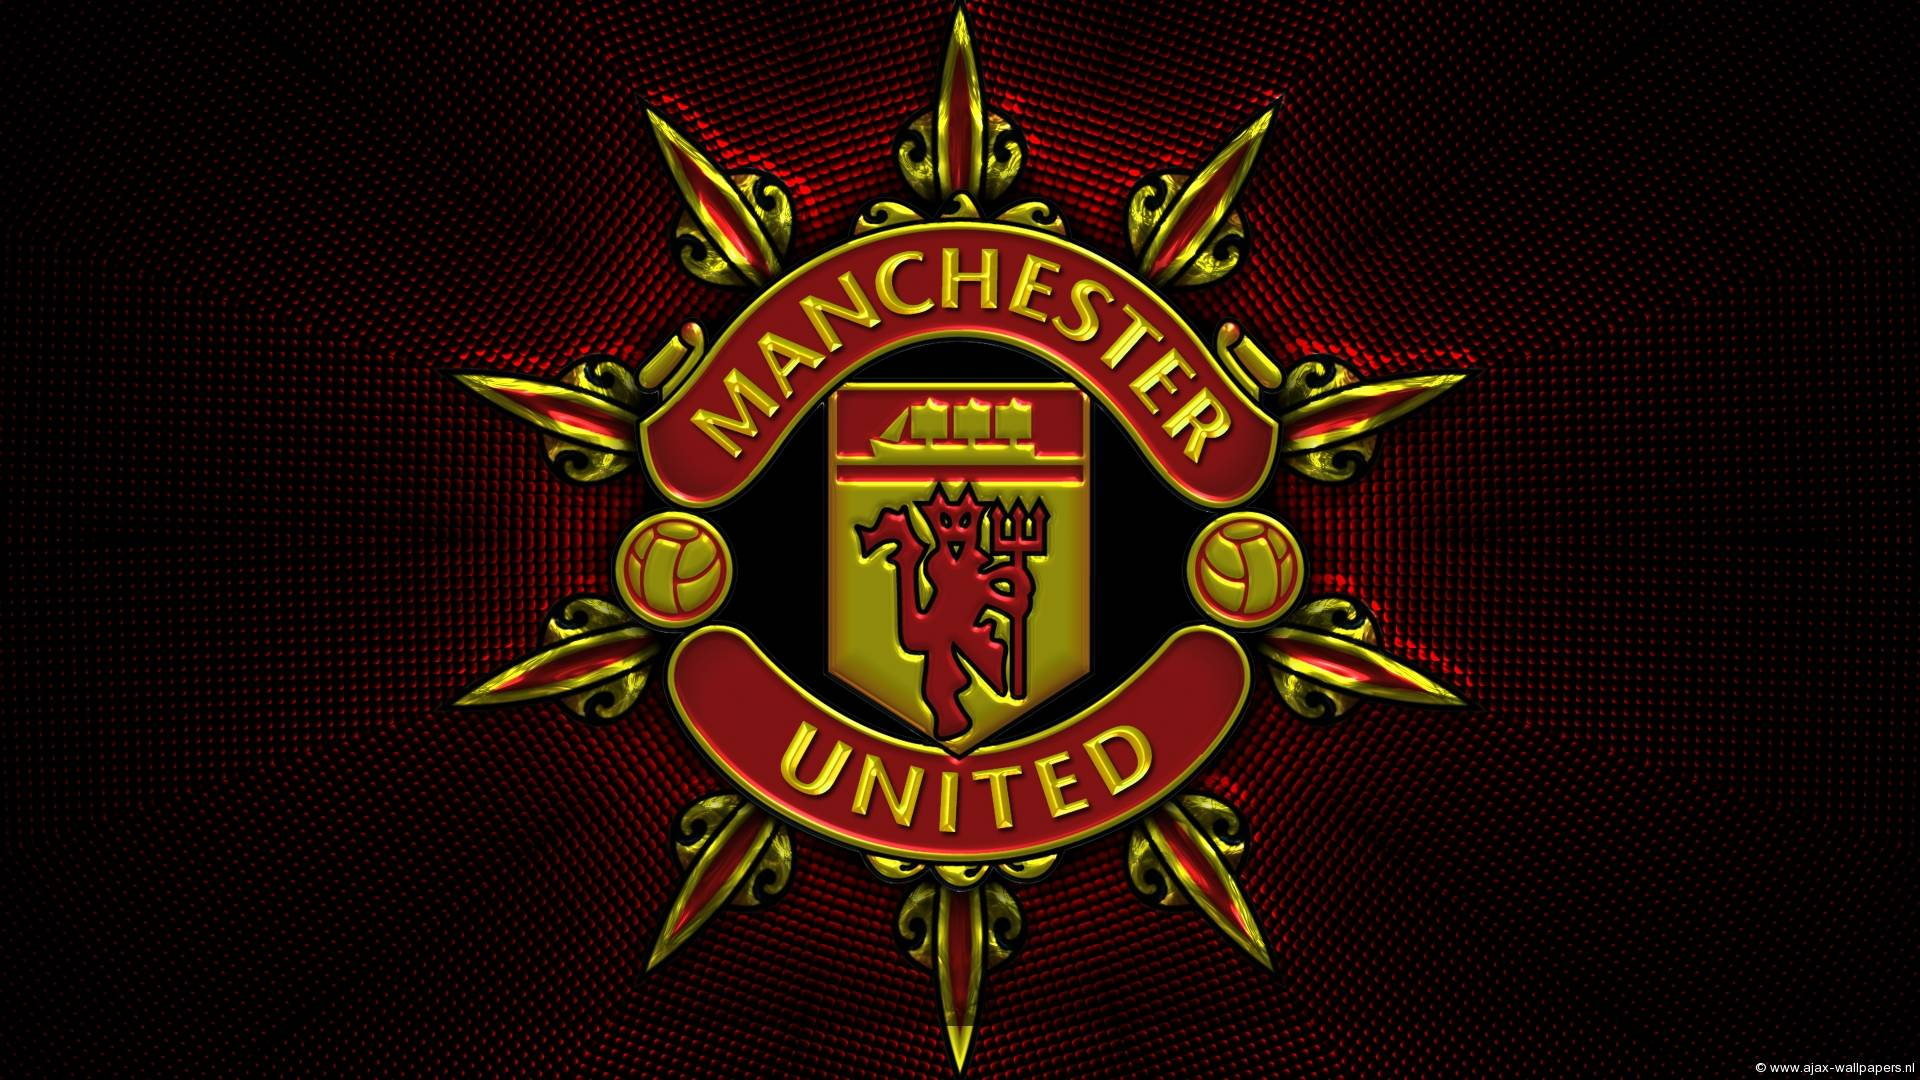 Wallpaper Manchester United Collection For Free Download